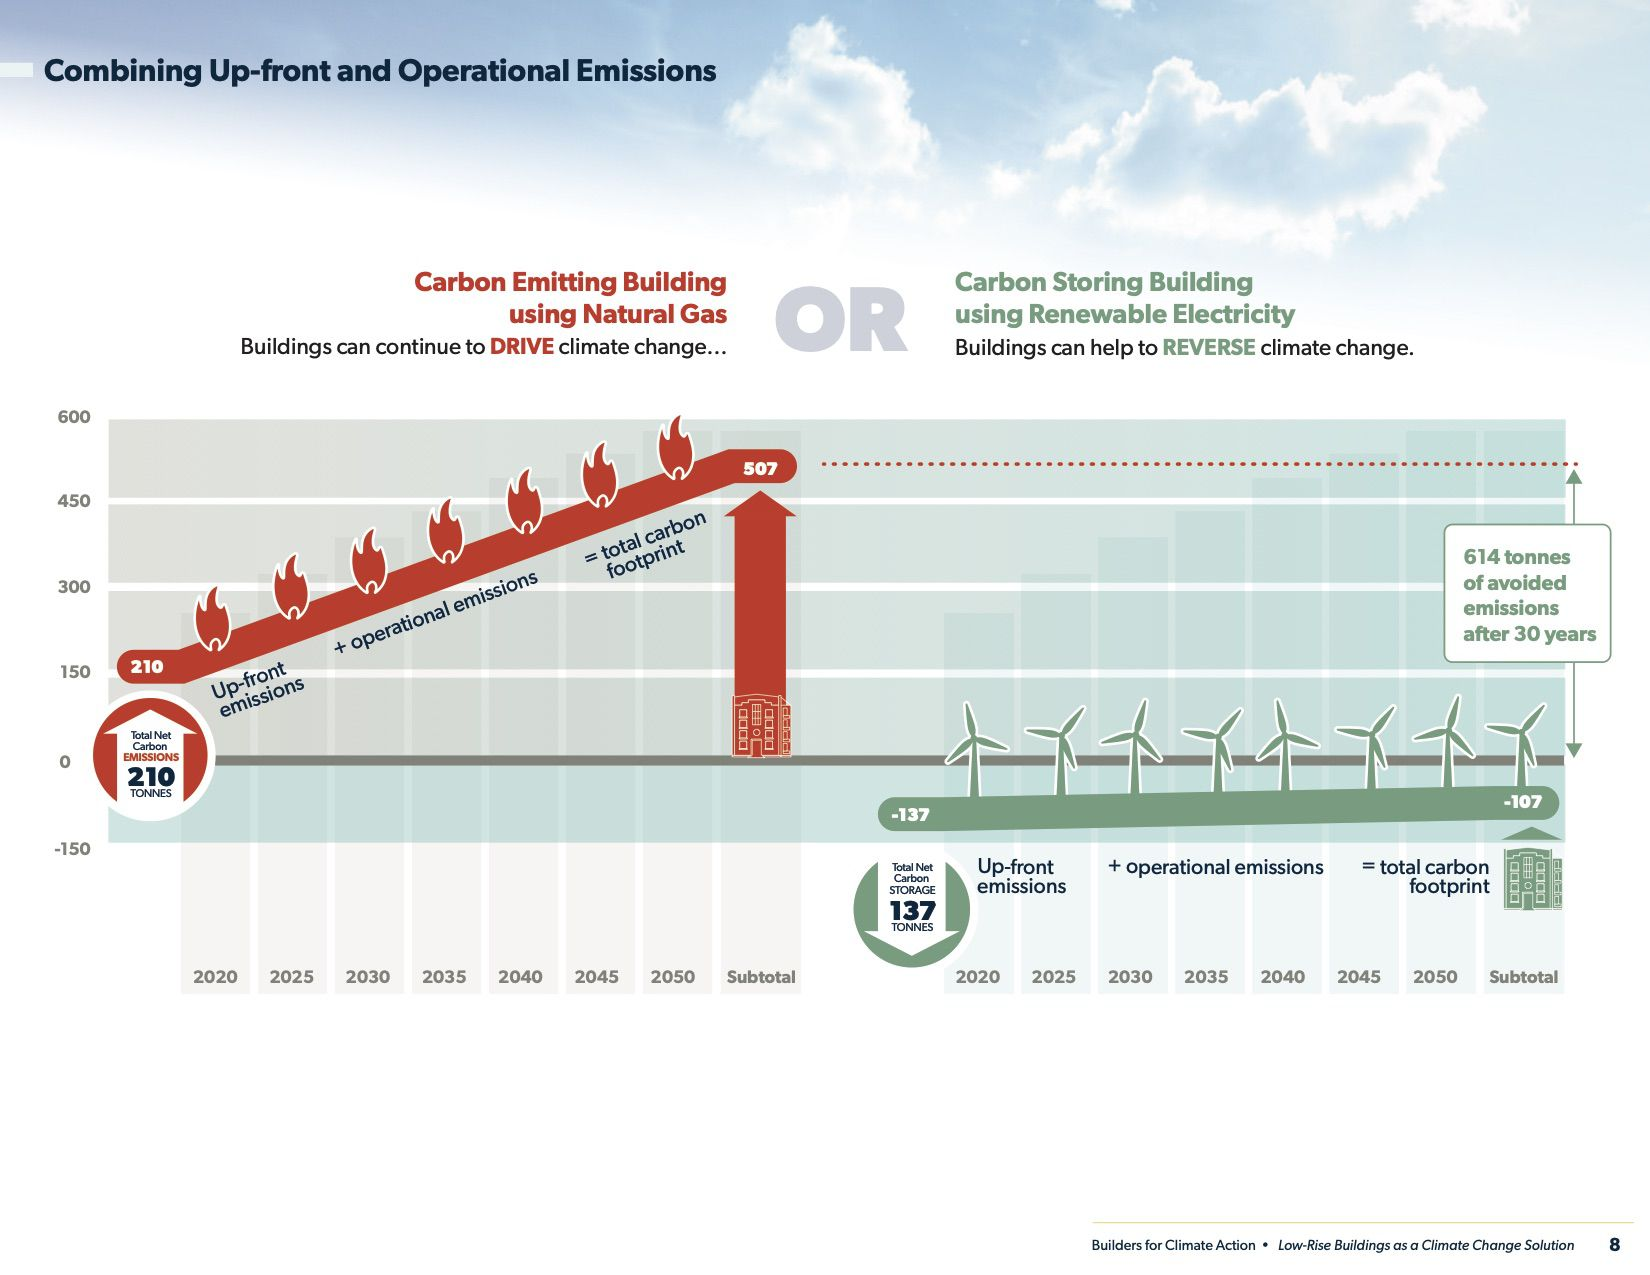 Combining upfront and operating emissions